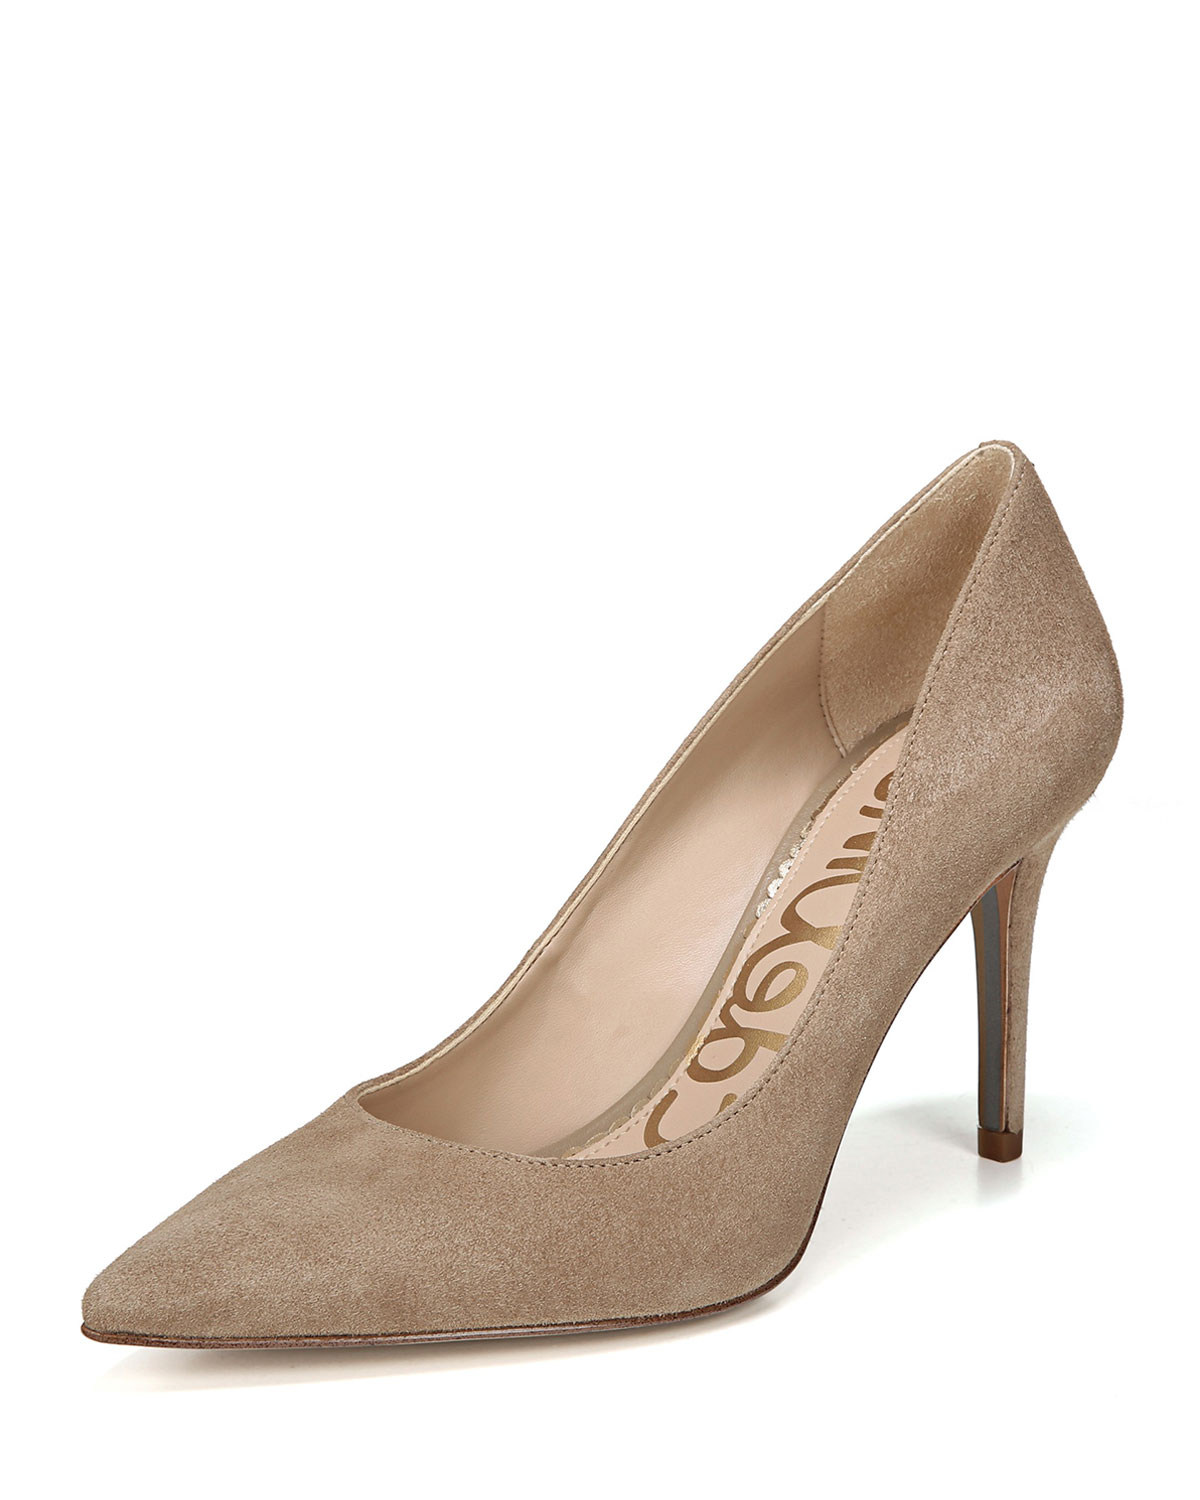 Margie Suede Pointed-Toe Pumps, Gray